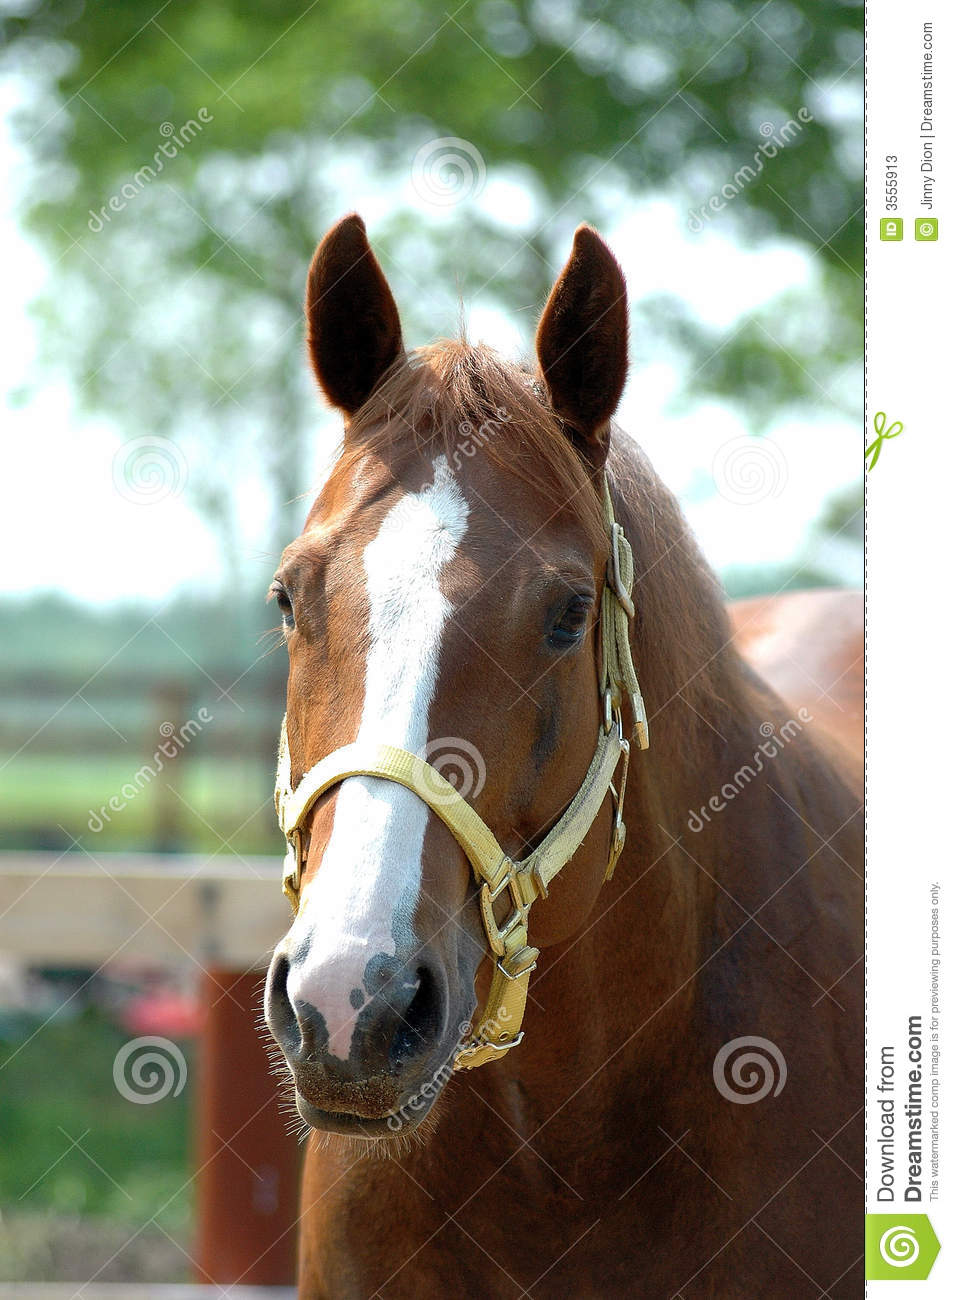 quarter horse head pictures - photo #29